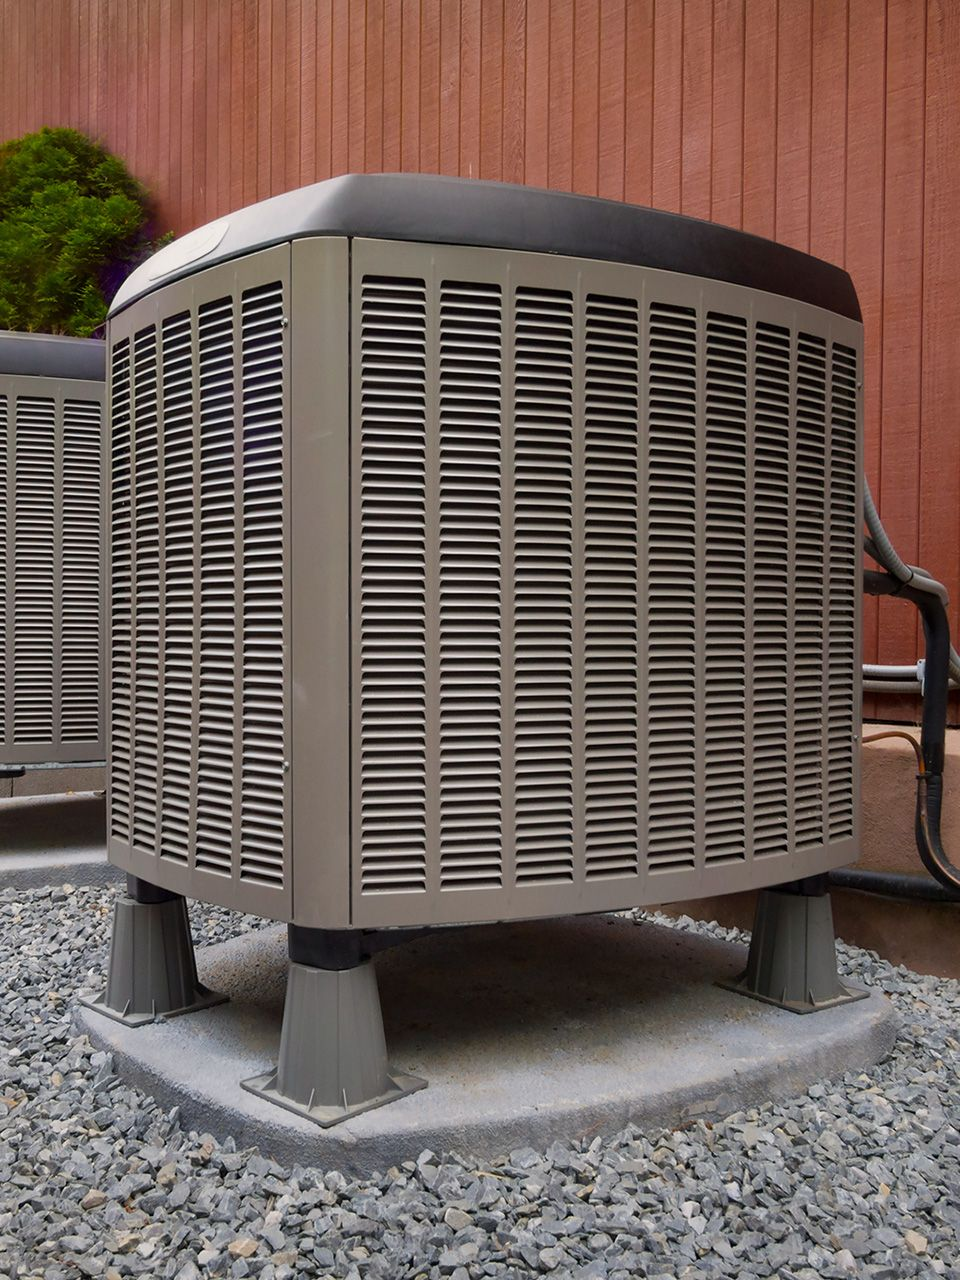 How does an hvac system work Hvac system, Heating and